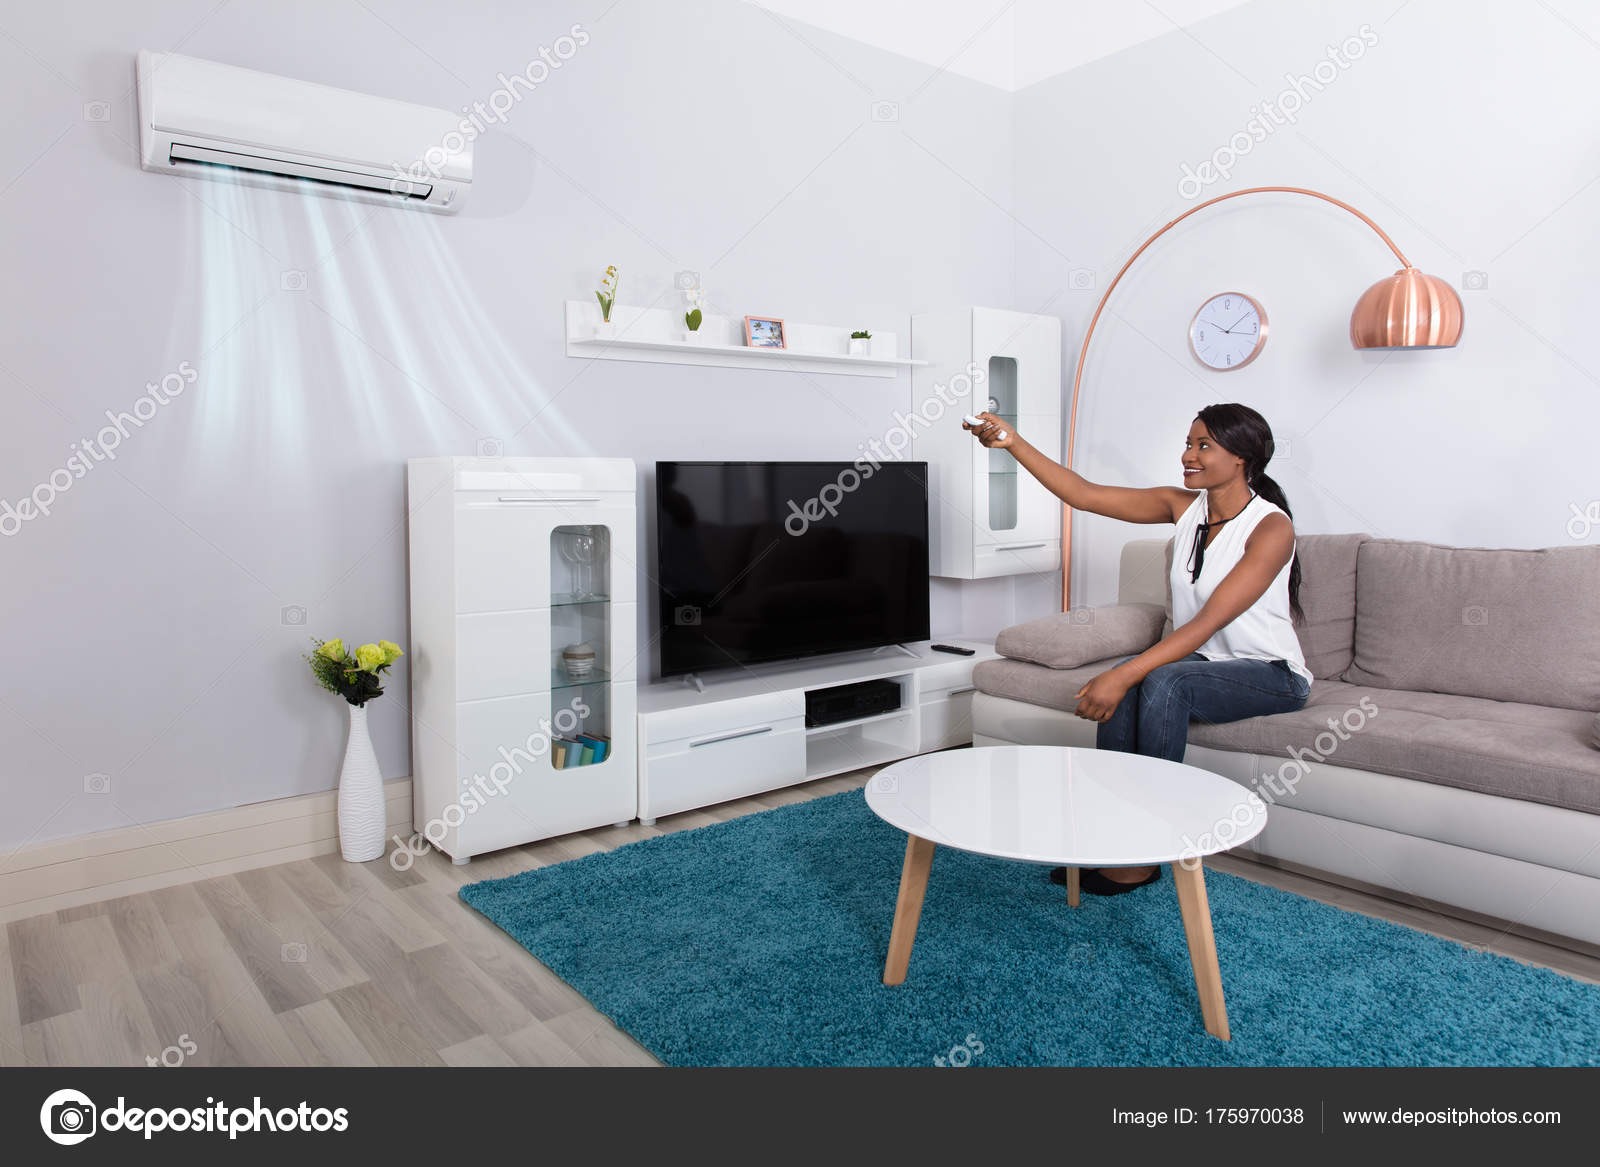 Woman Using Air Conditioner — Stock Photo © AndreyPopov #175970038